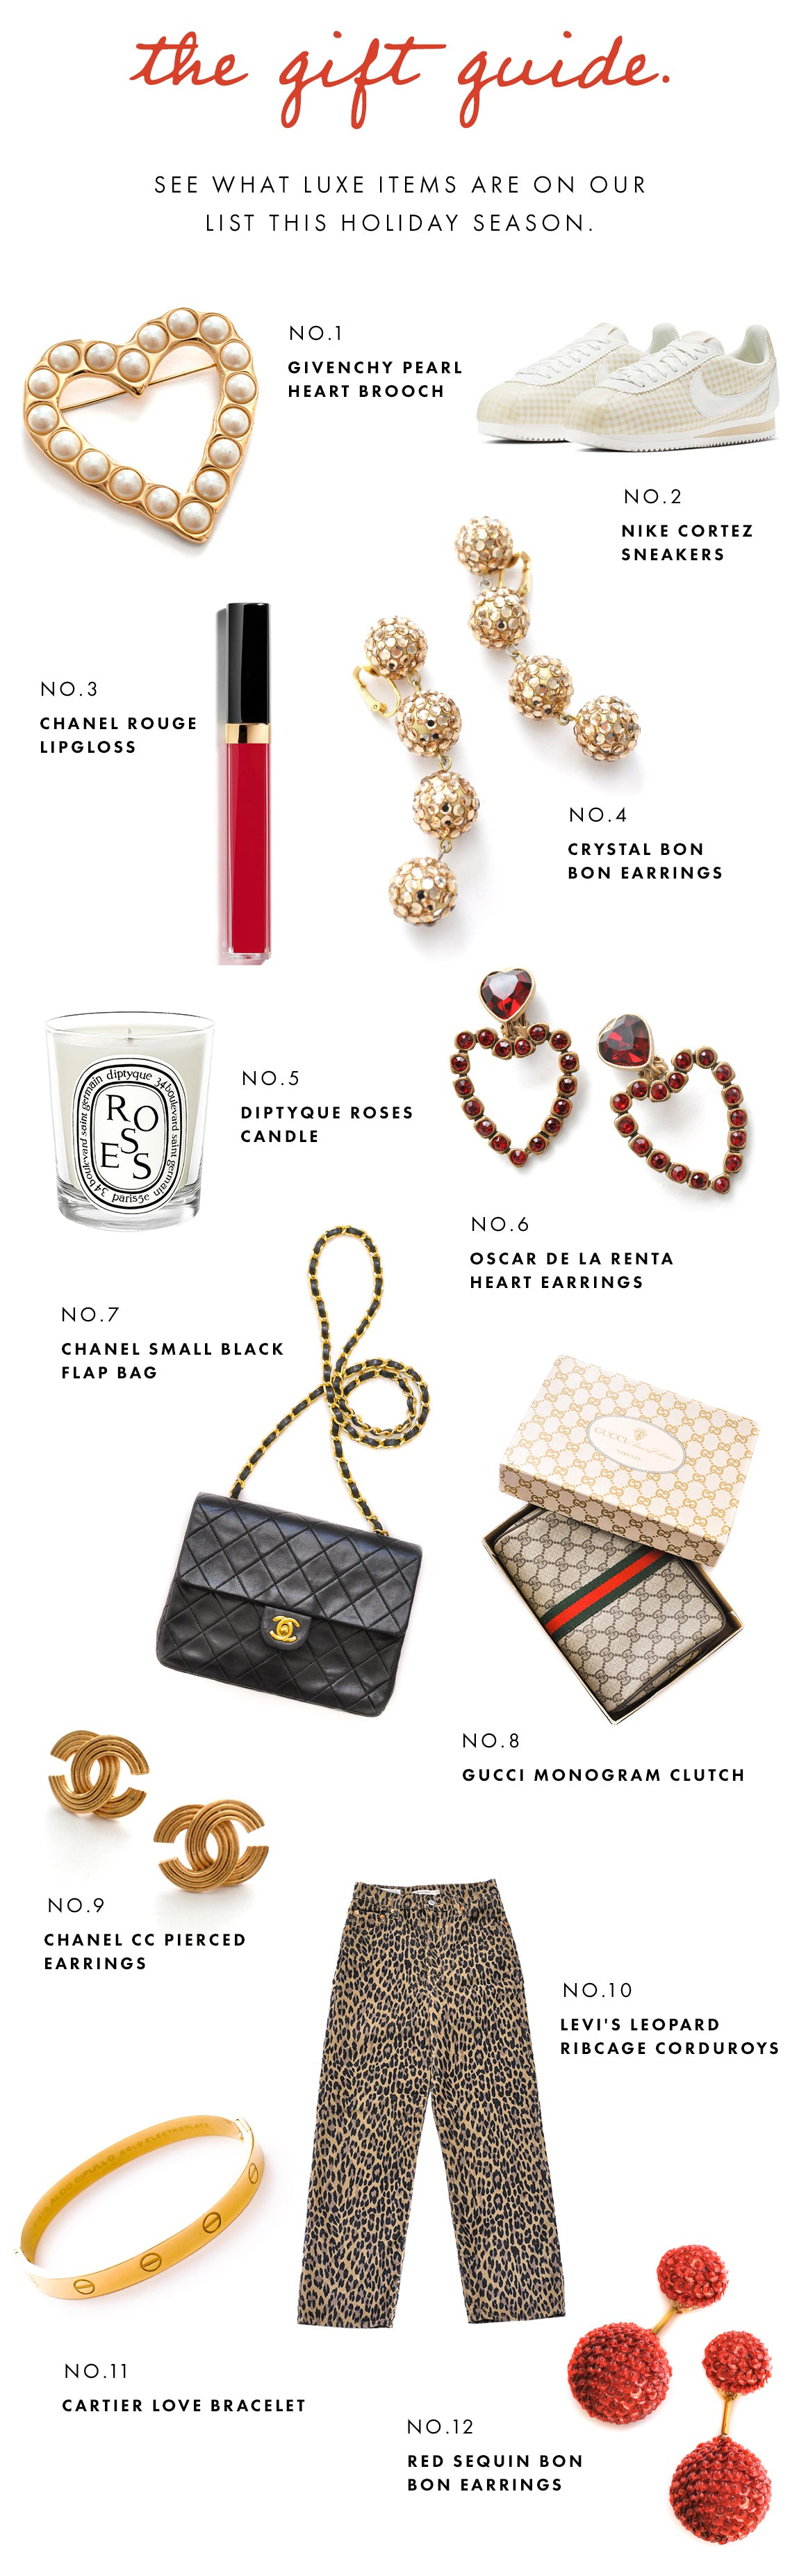 Our Luxe Gift Guide